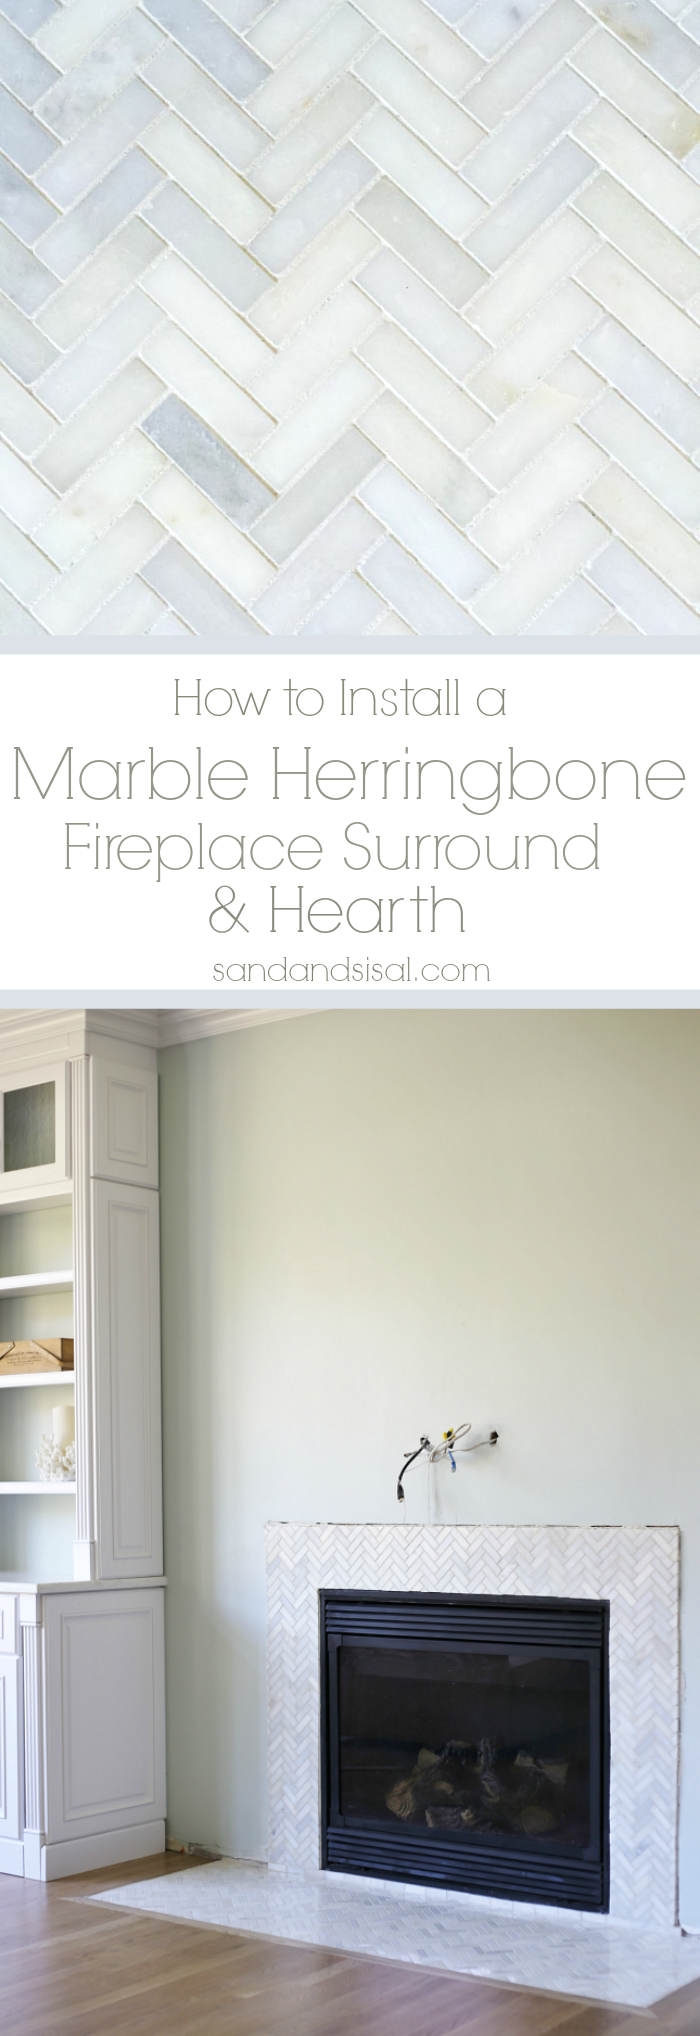 How To Install A Pedestal Sink Orc Week 3 Our Home: How To Install A Marble Herringbone Fireplace Surround And